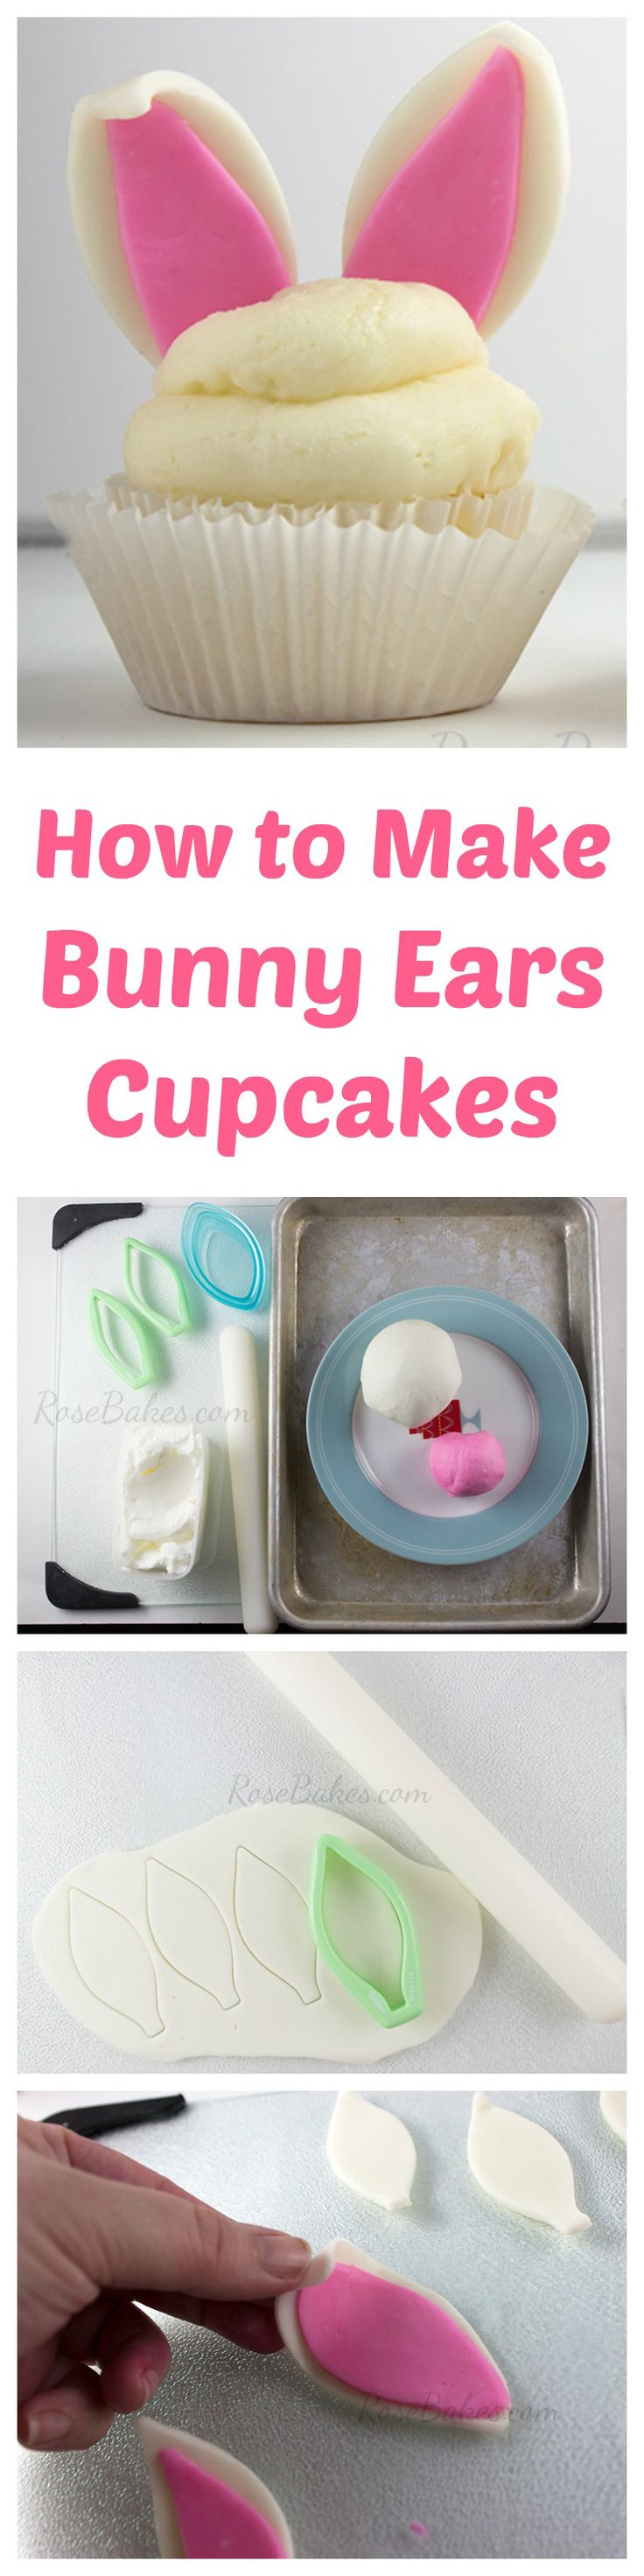 How to Make Bunny Ears Cupcakes